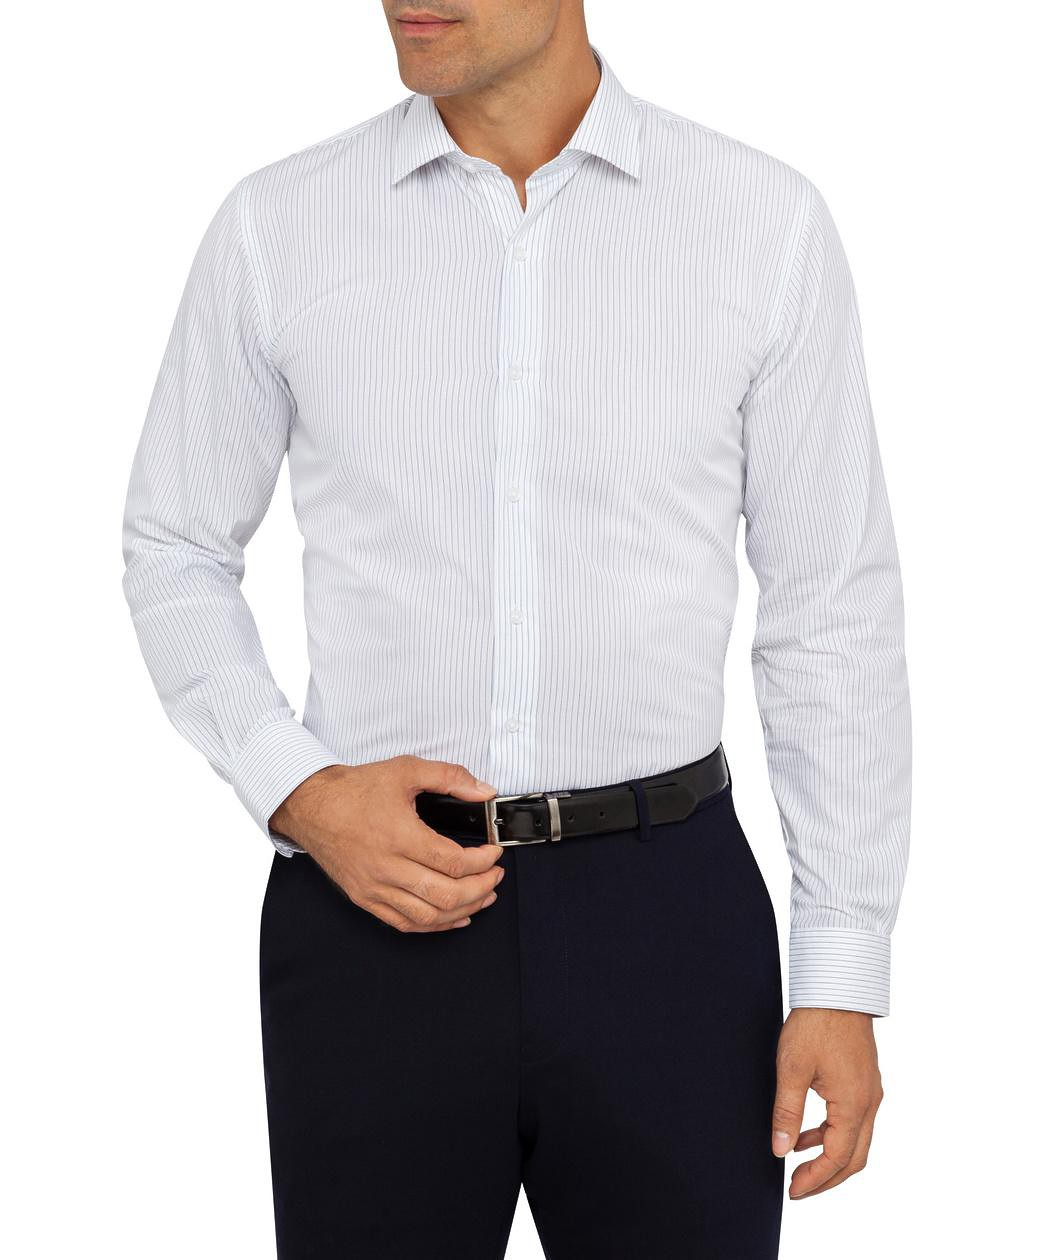 Van Heusen Slim Fit White Stripes Shirt Mens Shirt Van Heusen